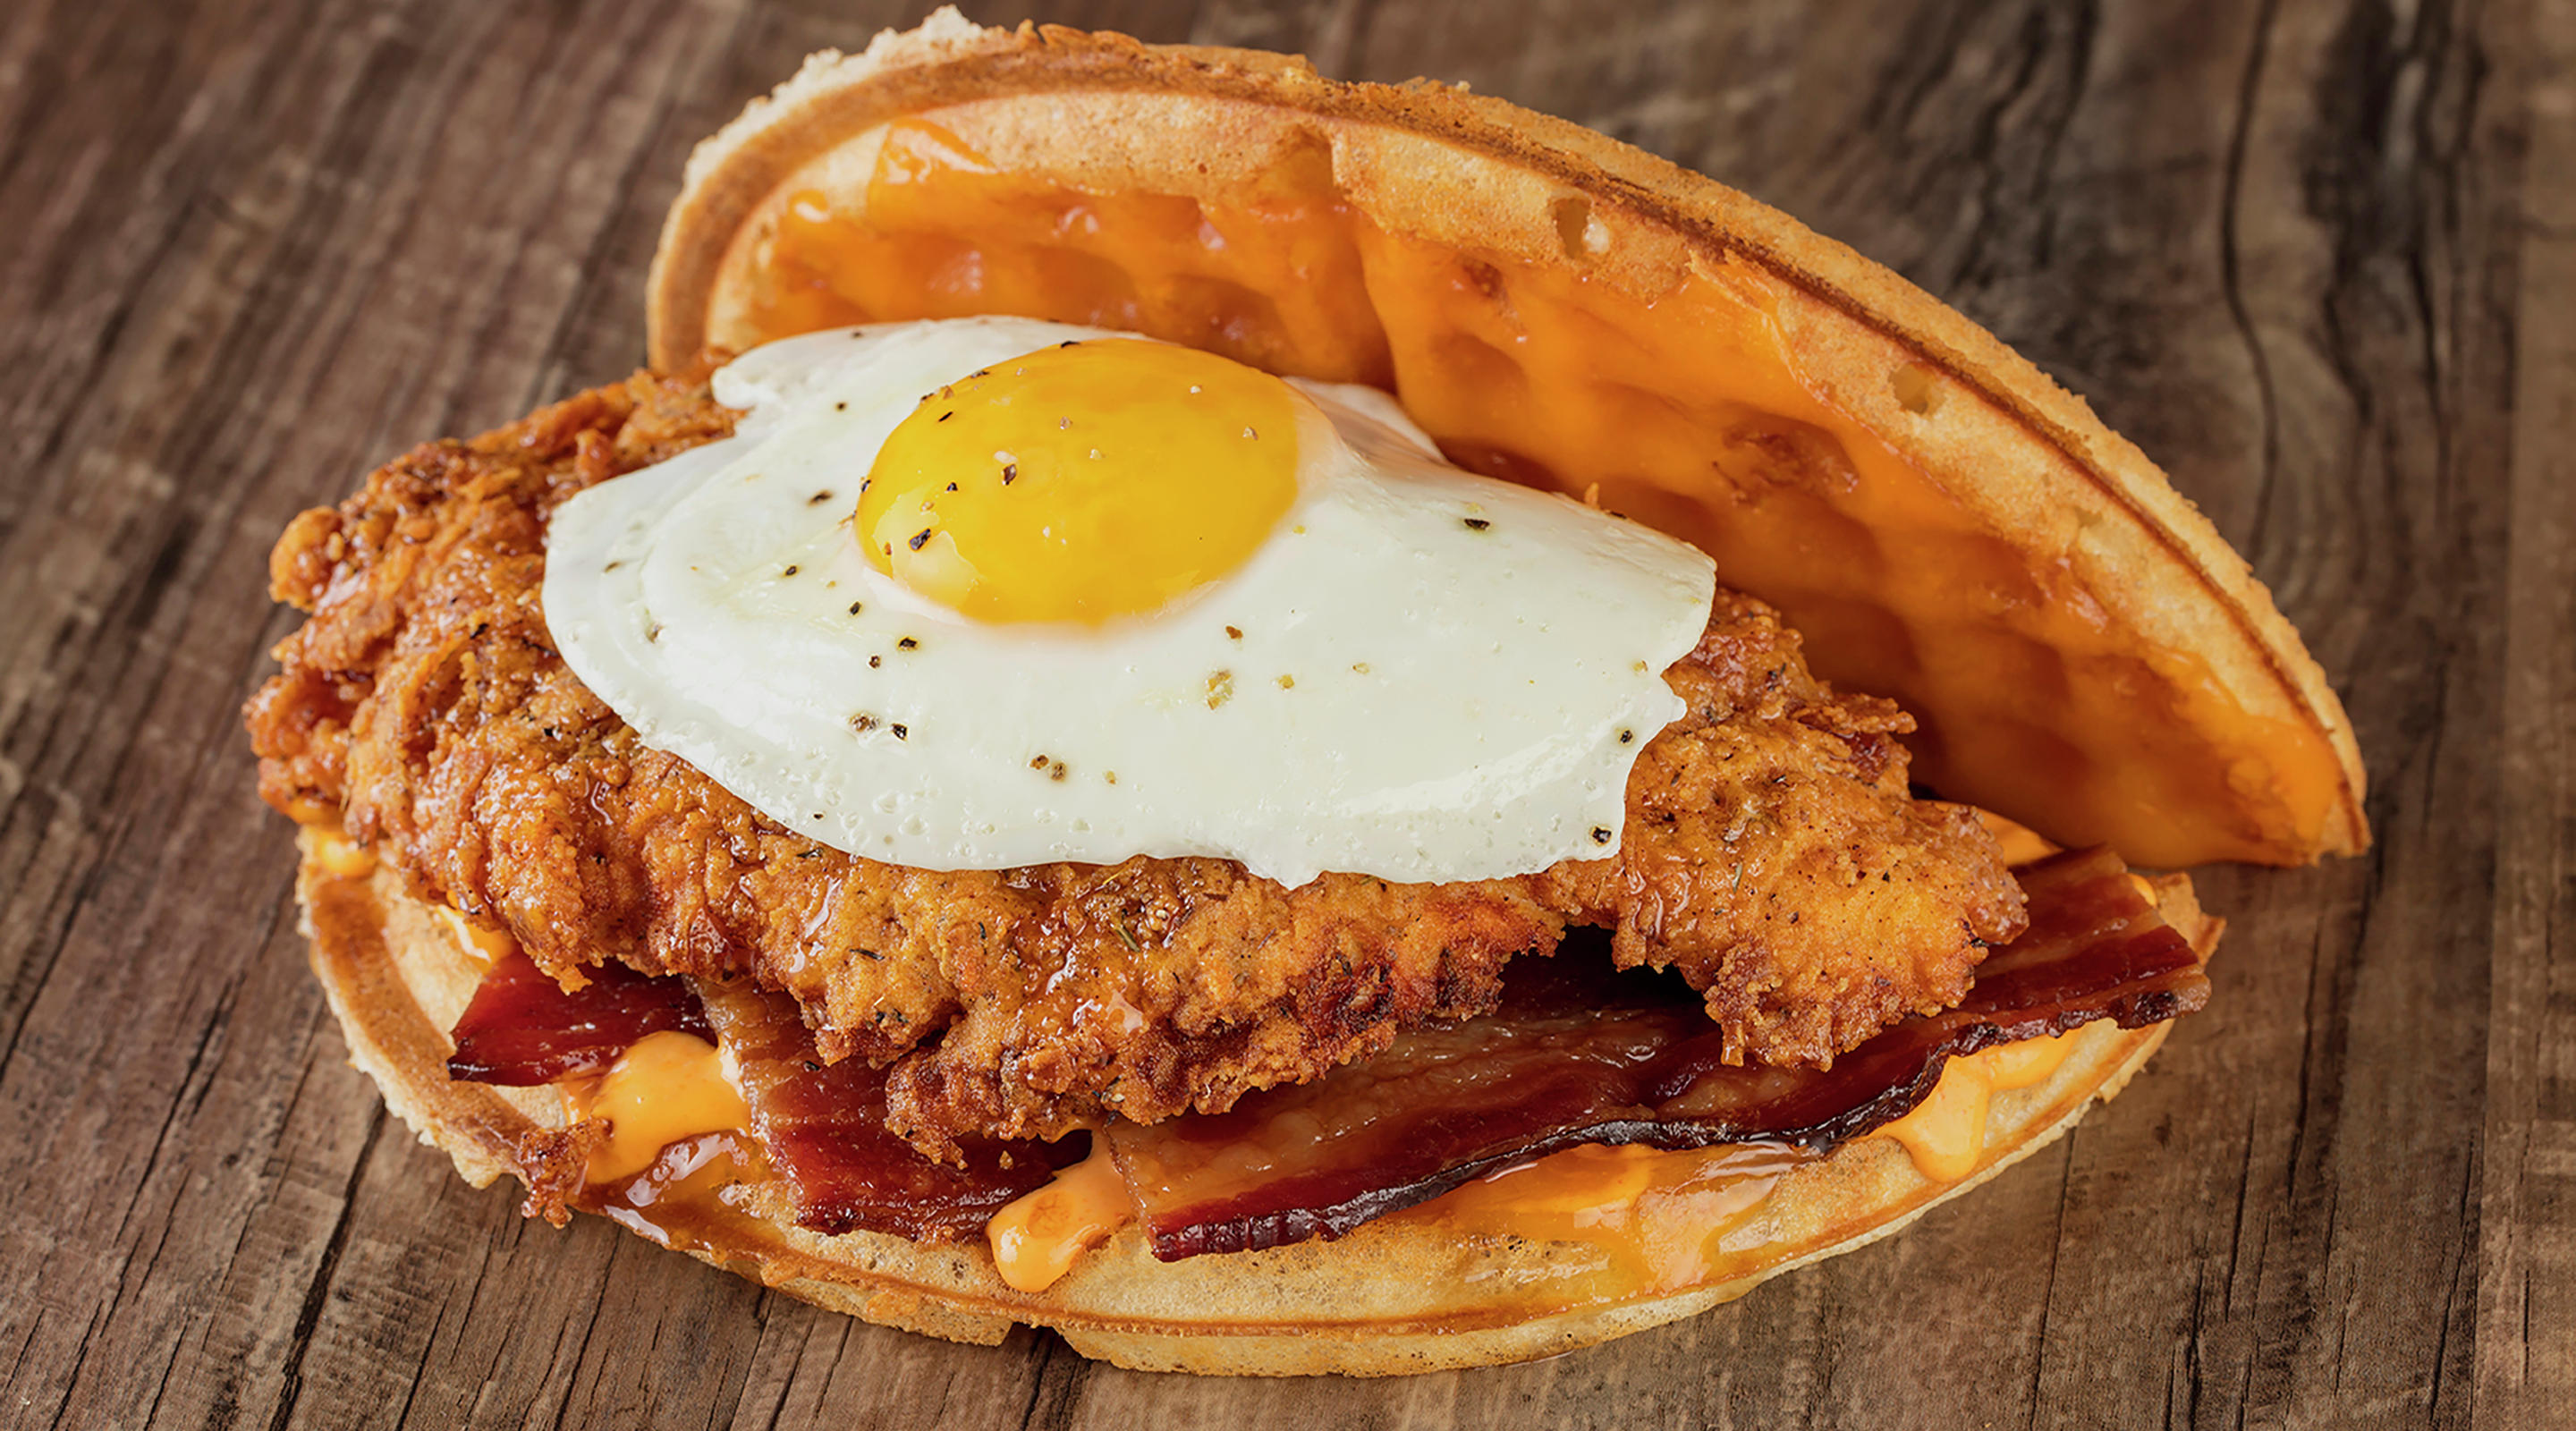 Bruxie Holy Chicken image.